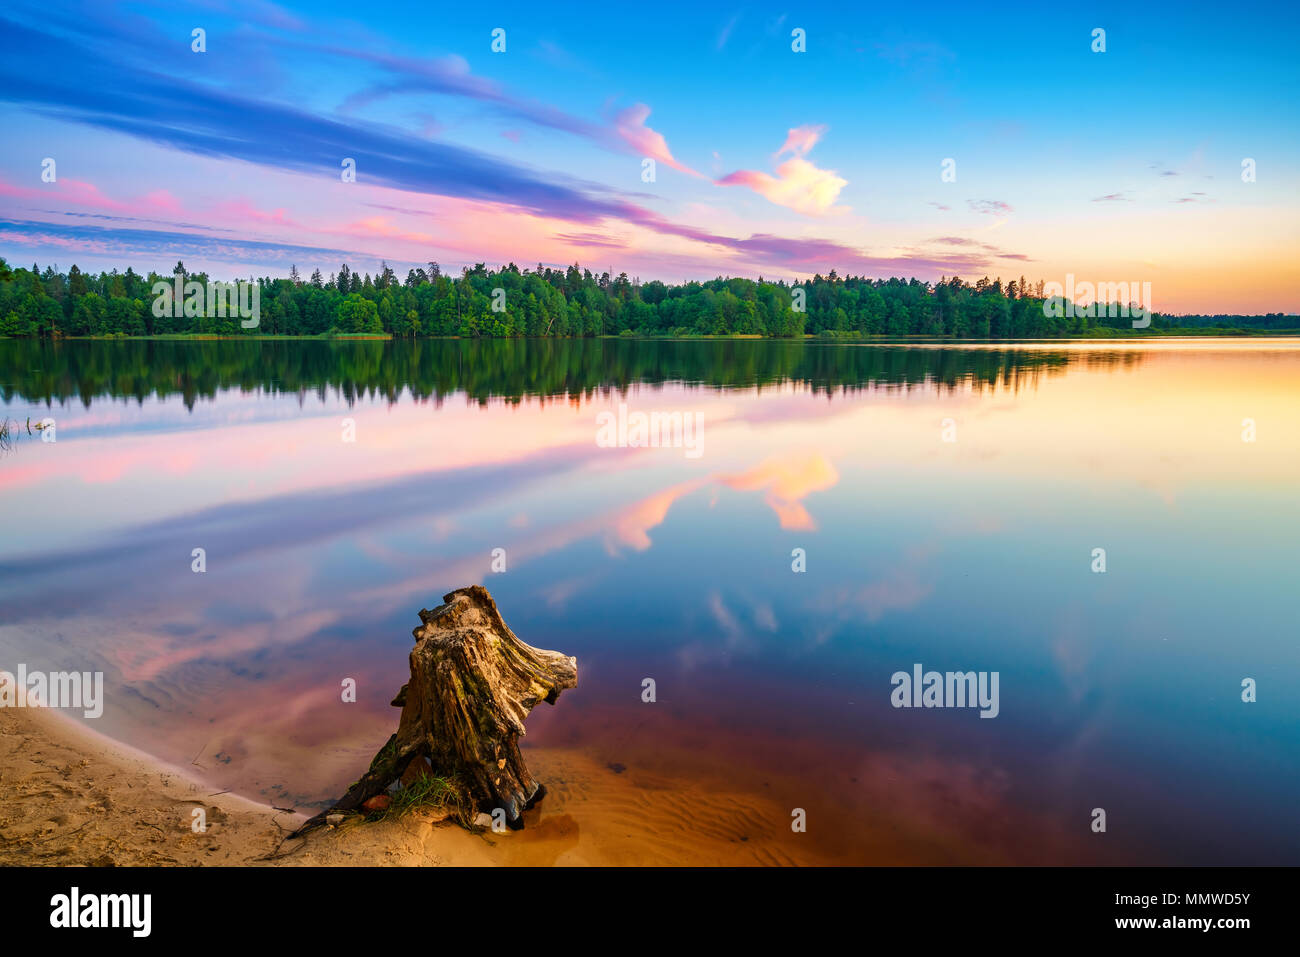 Bright sunset on a lake - Stock Image